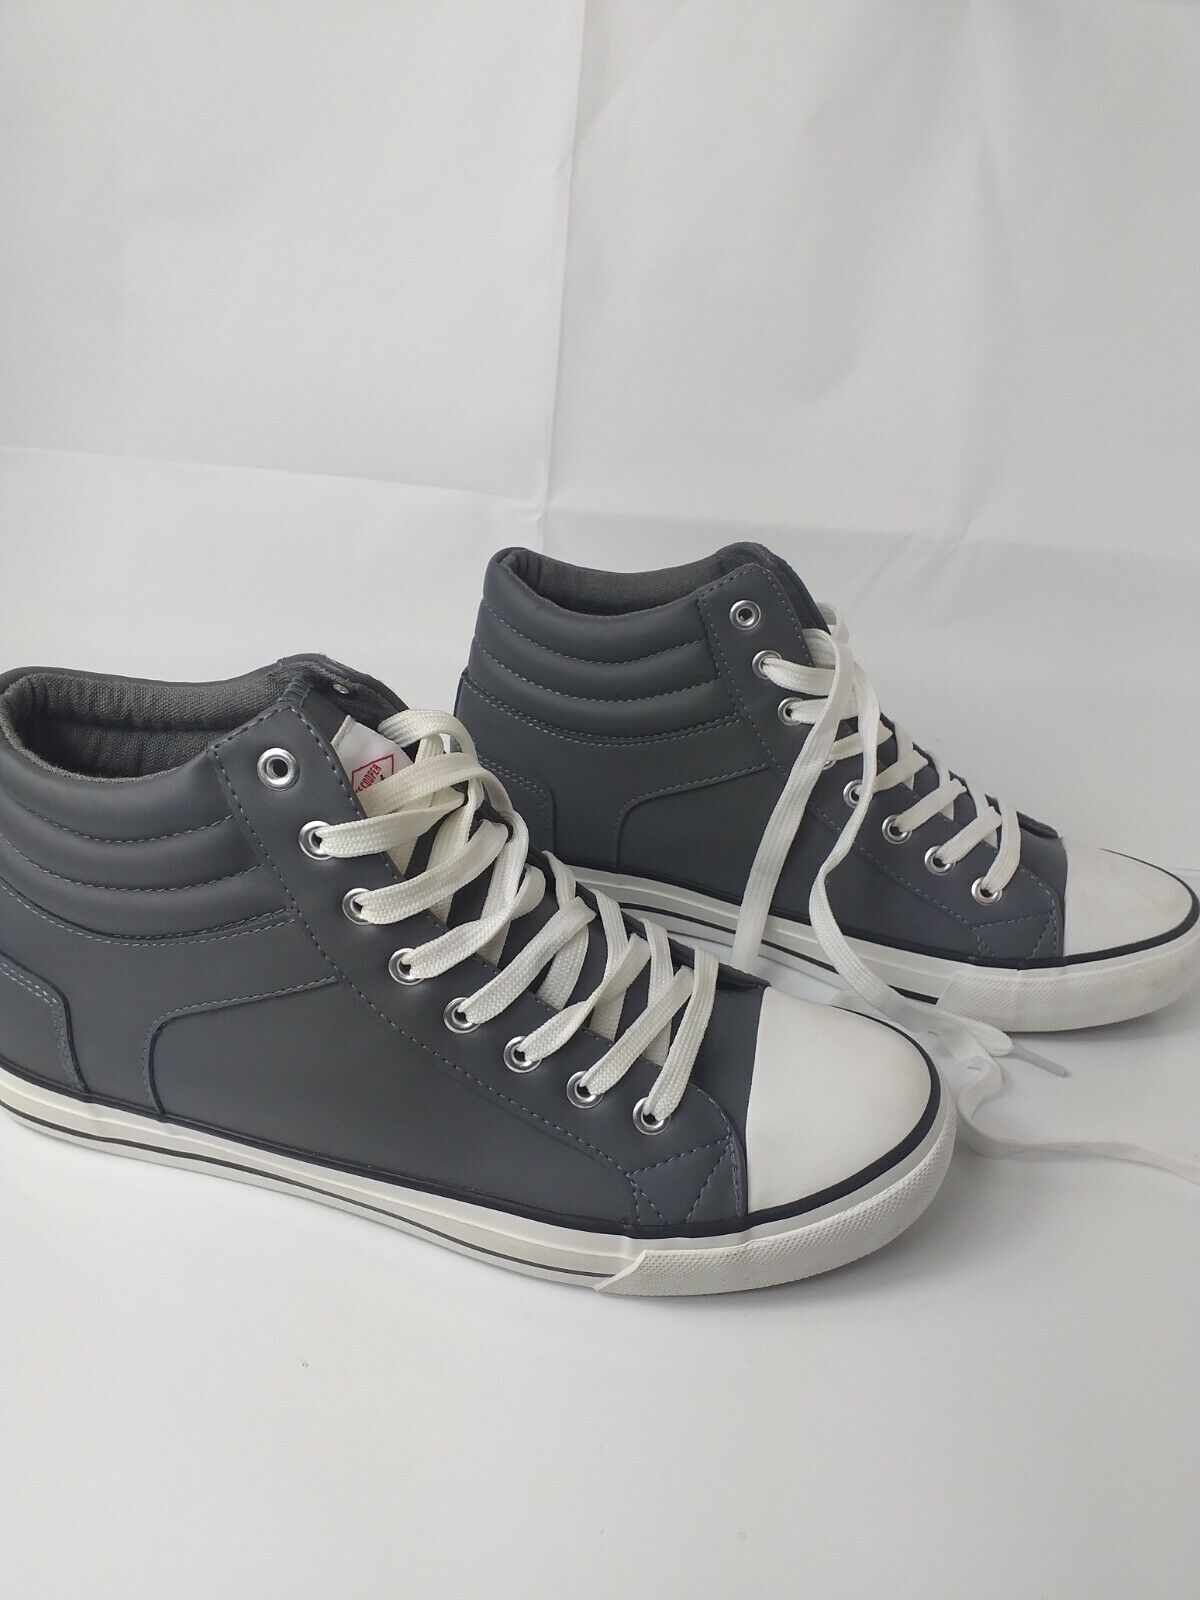 Mens Trainers Lee Cooper orginal Color Grey Leather UK size 8 New Without Box .